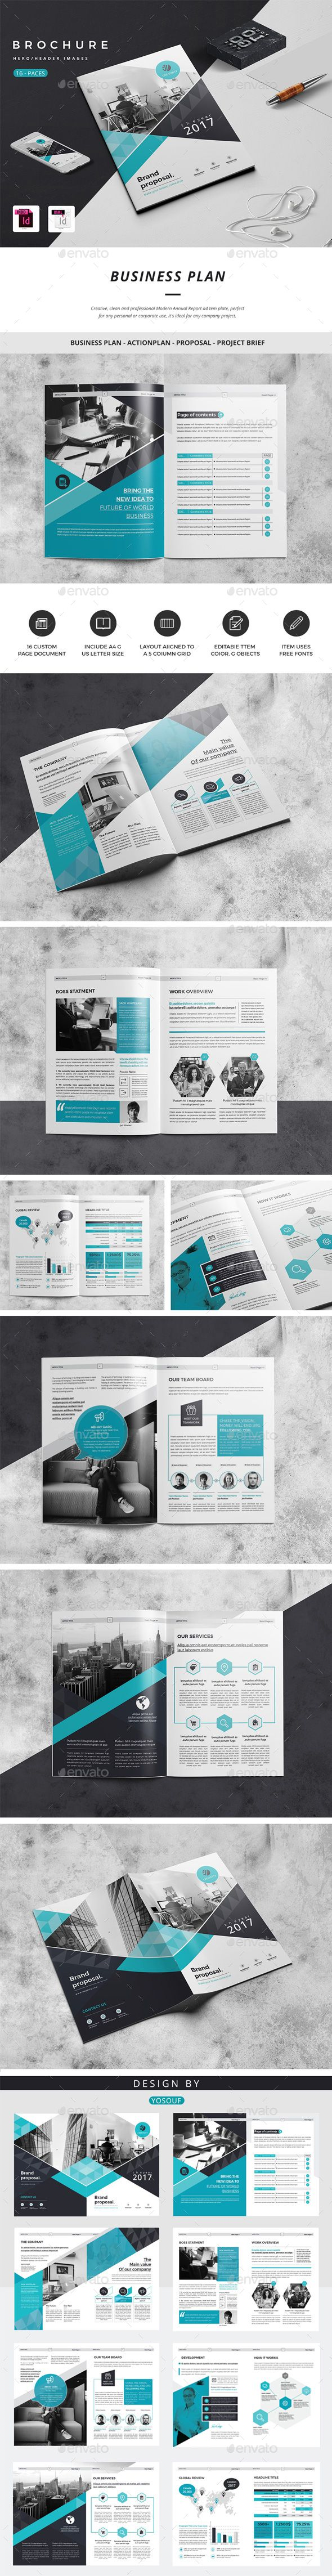 Company Brochure by Y-GFX Company Brochure This InDesign brochure is clean & professional?. Create your company鈥檚 documentation quick and easy.